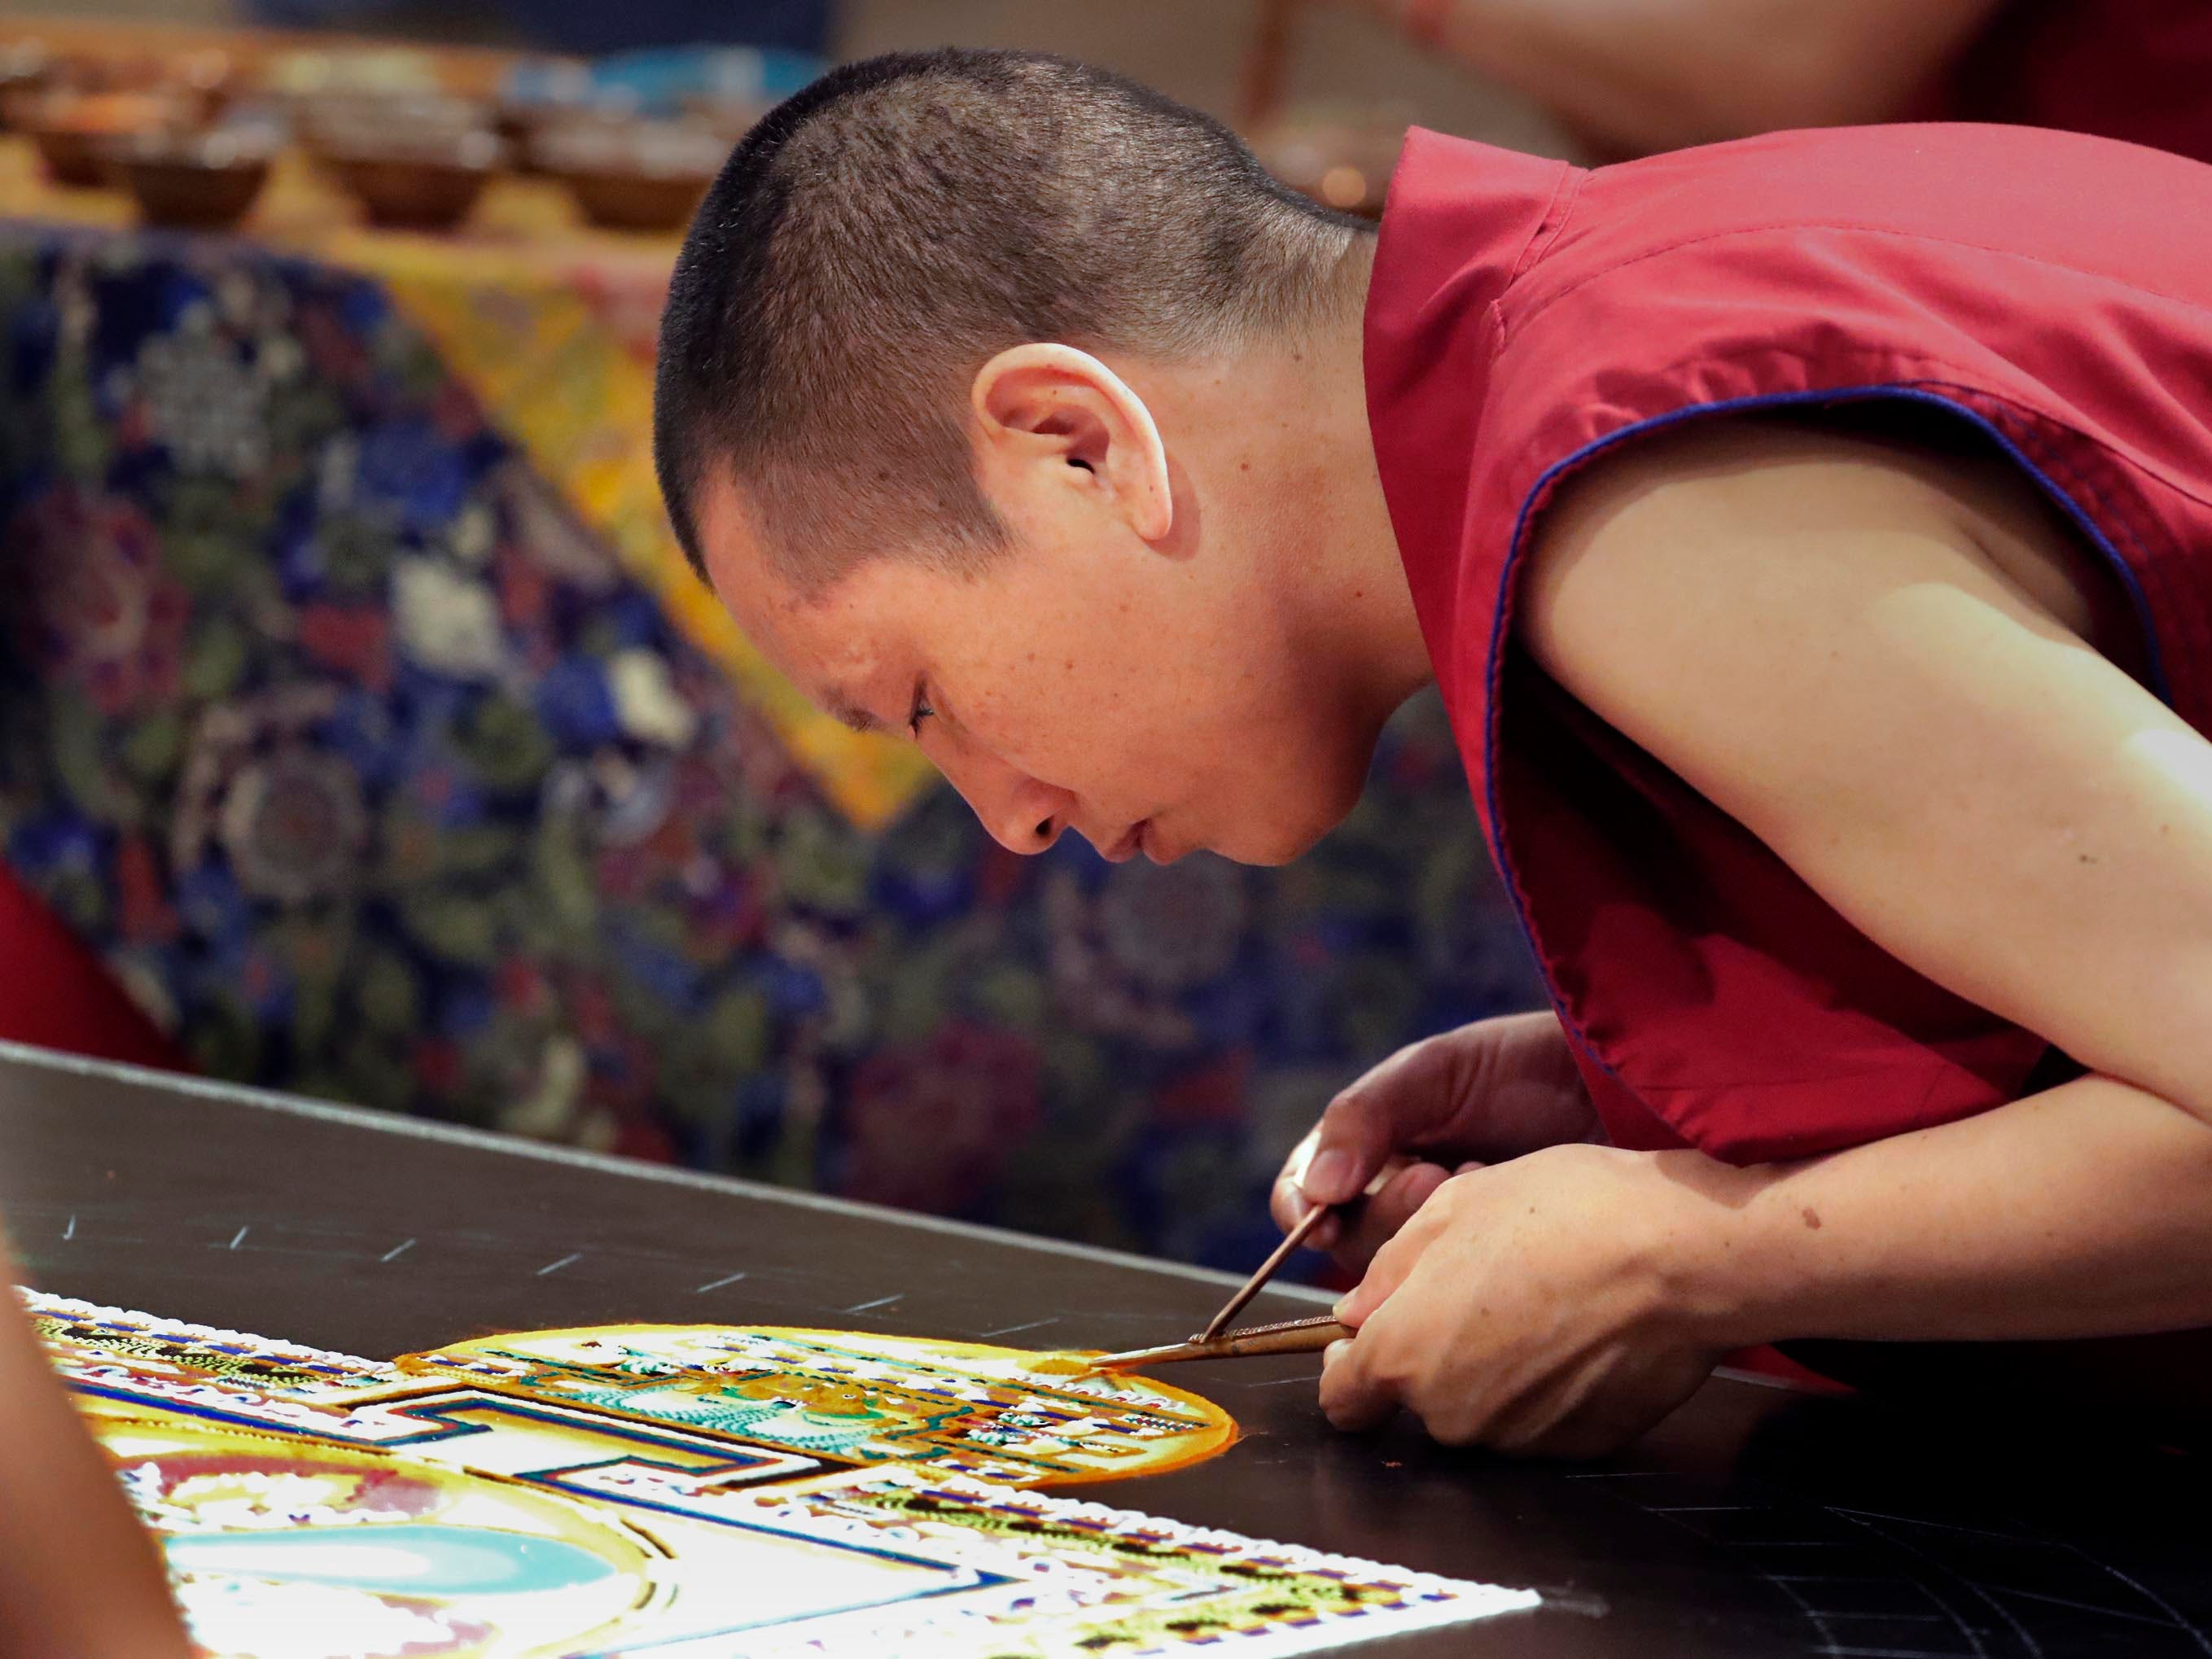 """Lobsang Dorjee, a Buddhist monk, applies sand to create an intricate portion of the mandala. Buddhist monks from the Drepung Loseling Monastery, mix bowls of colorful sand and use funnels to apply the sand and create a  sand mandala in the center of Milwaukee's City Hall, Thursday, April 11, 2019.   The mandala represents the world in its divine form; on the inner level, they represent a map by which the ordinary human mind is transformed into enlightened mind; and on the secret level, they depict the primordially perfect balance of the subtle energies of the body and the clear light dimension of the mind. The creation of a sand painting is said to effect purification and healing on these three levels.  The display ends with a closing ceremony Friday at 5 p.m. where the sand """"painting"""" will be destroyed and vials of sand shared with attendees. For more information go to www.earlymusicnow.org"""